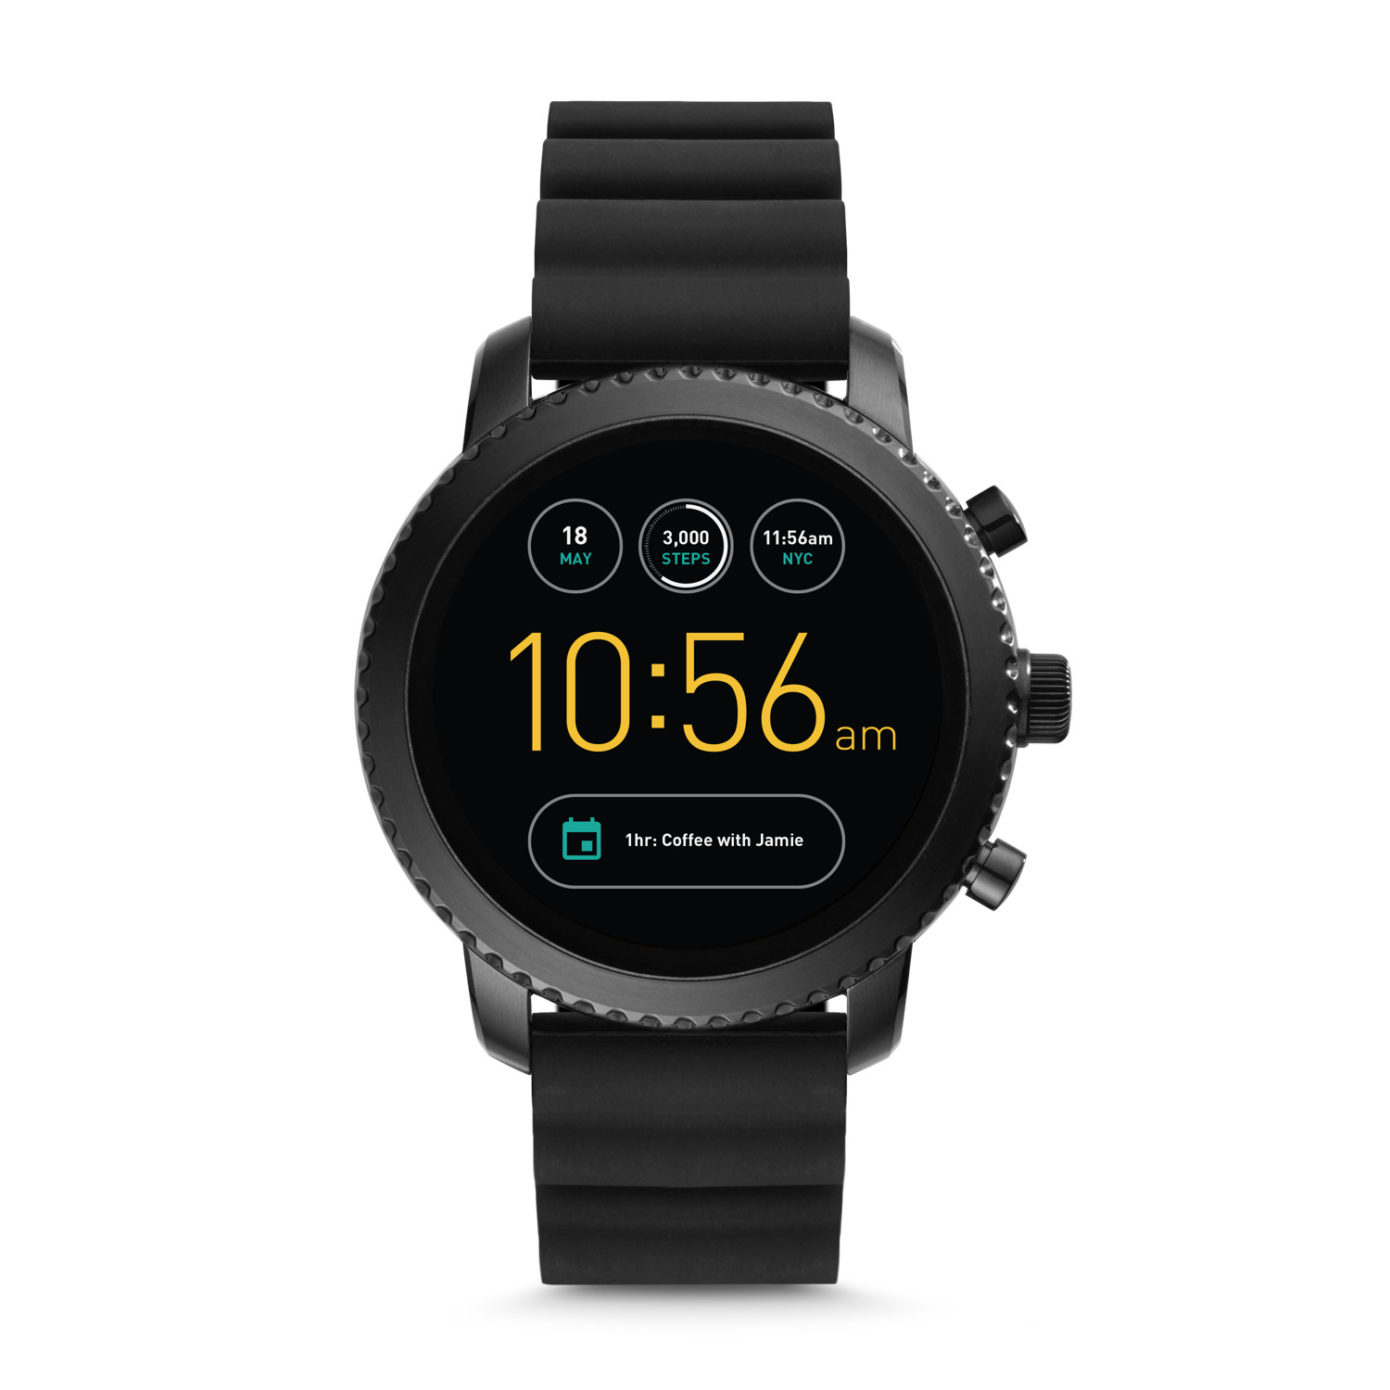 d7336bf22fab Fossil Q Explorist Gen 3 review  The Wear OS fashionista